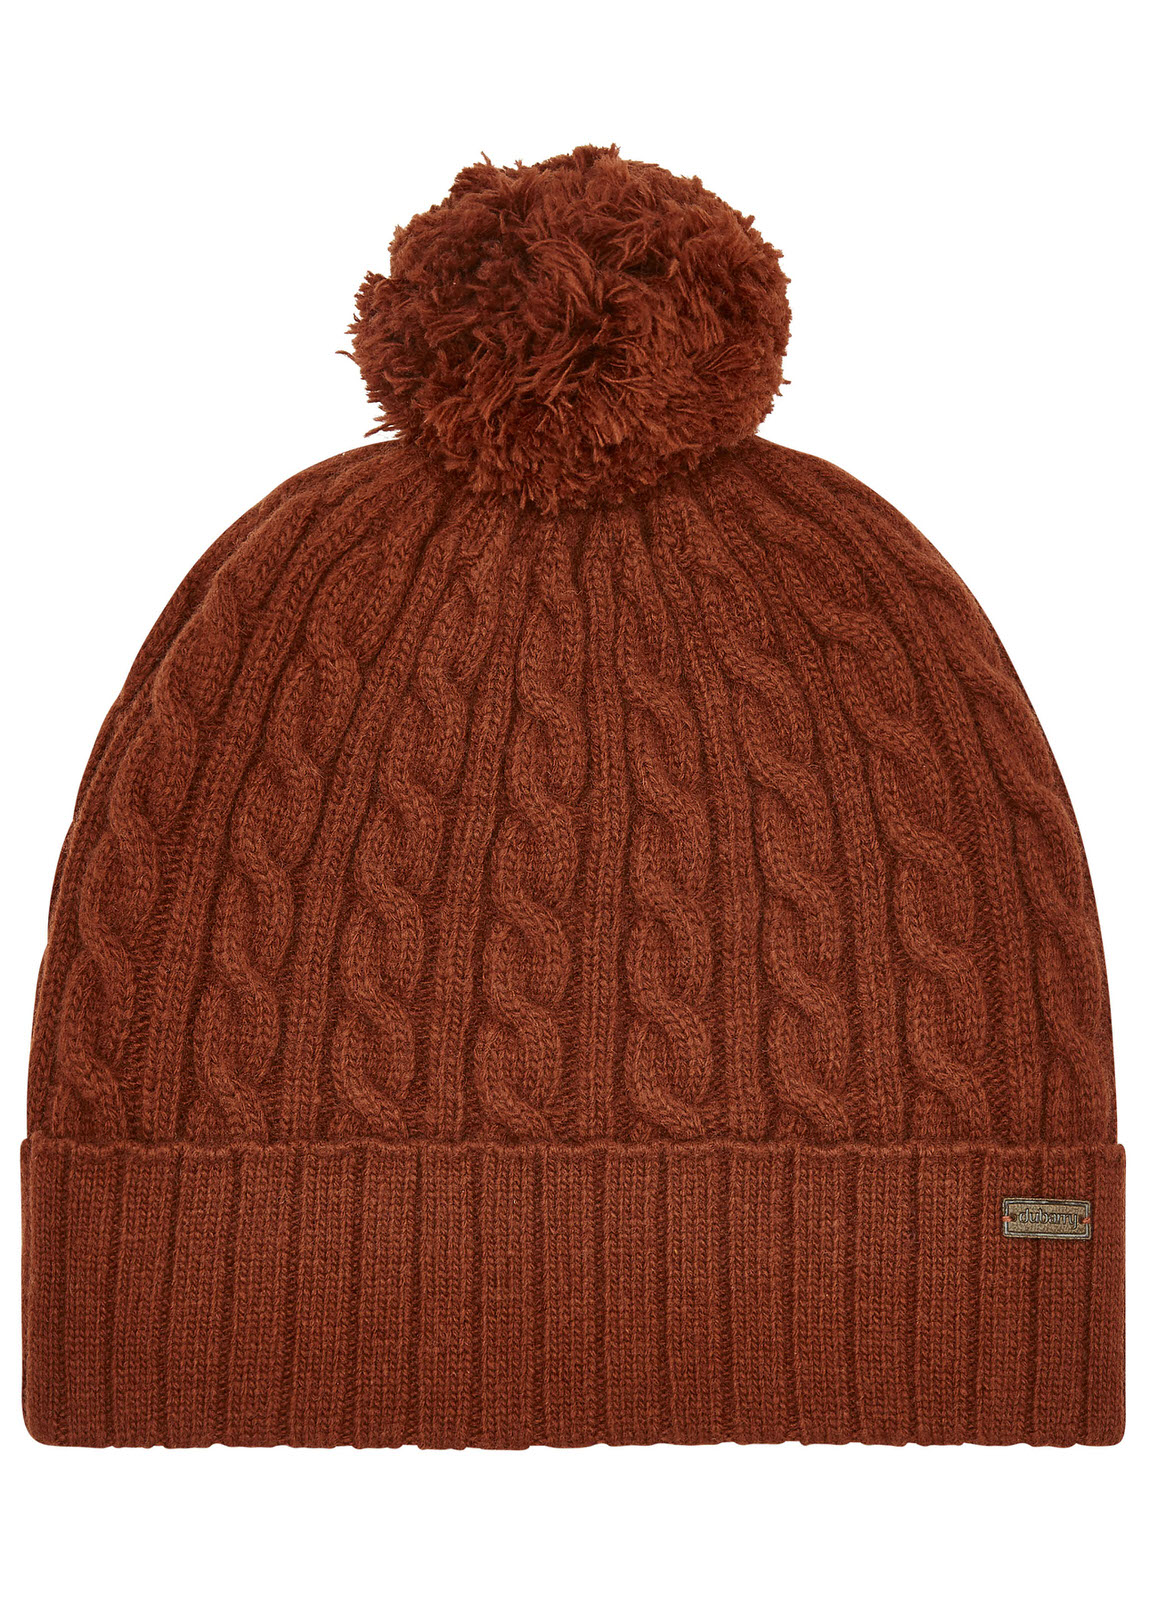 Schull_Knitted_Hat_Russet_Image_1